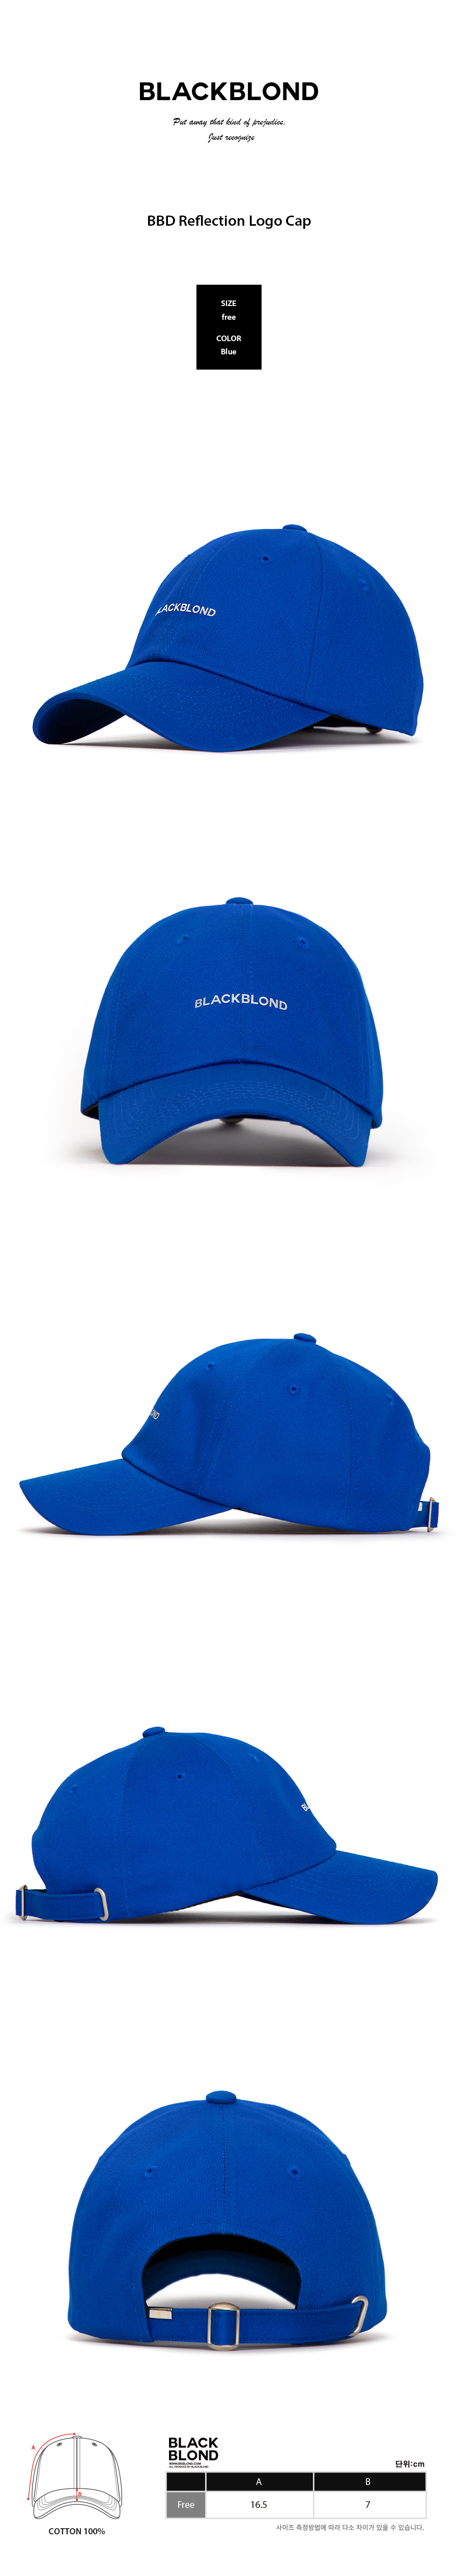 BBD-Reflection-Logo-Cap-%28Blue%29.jpg